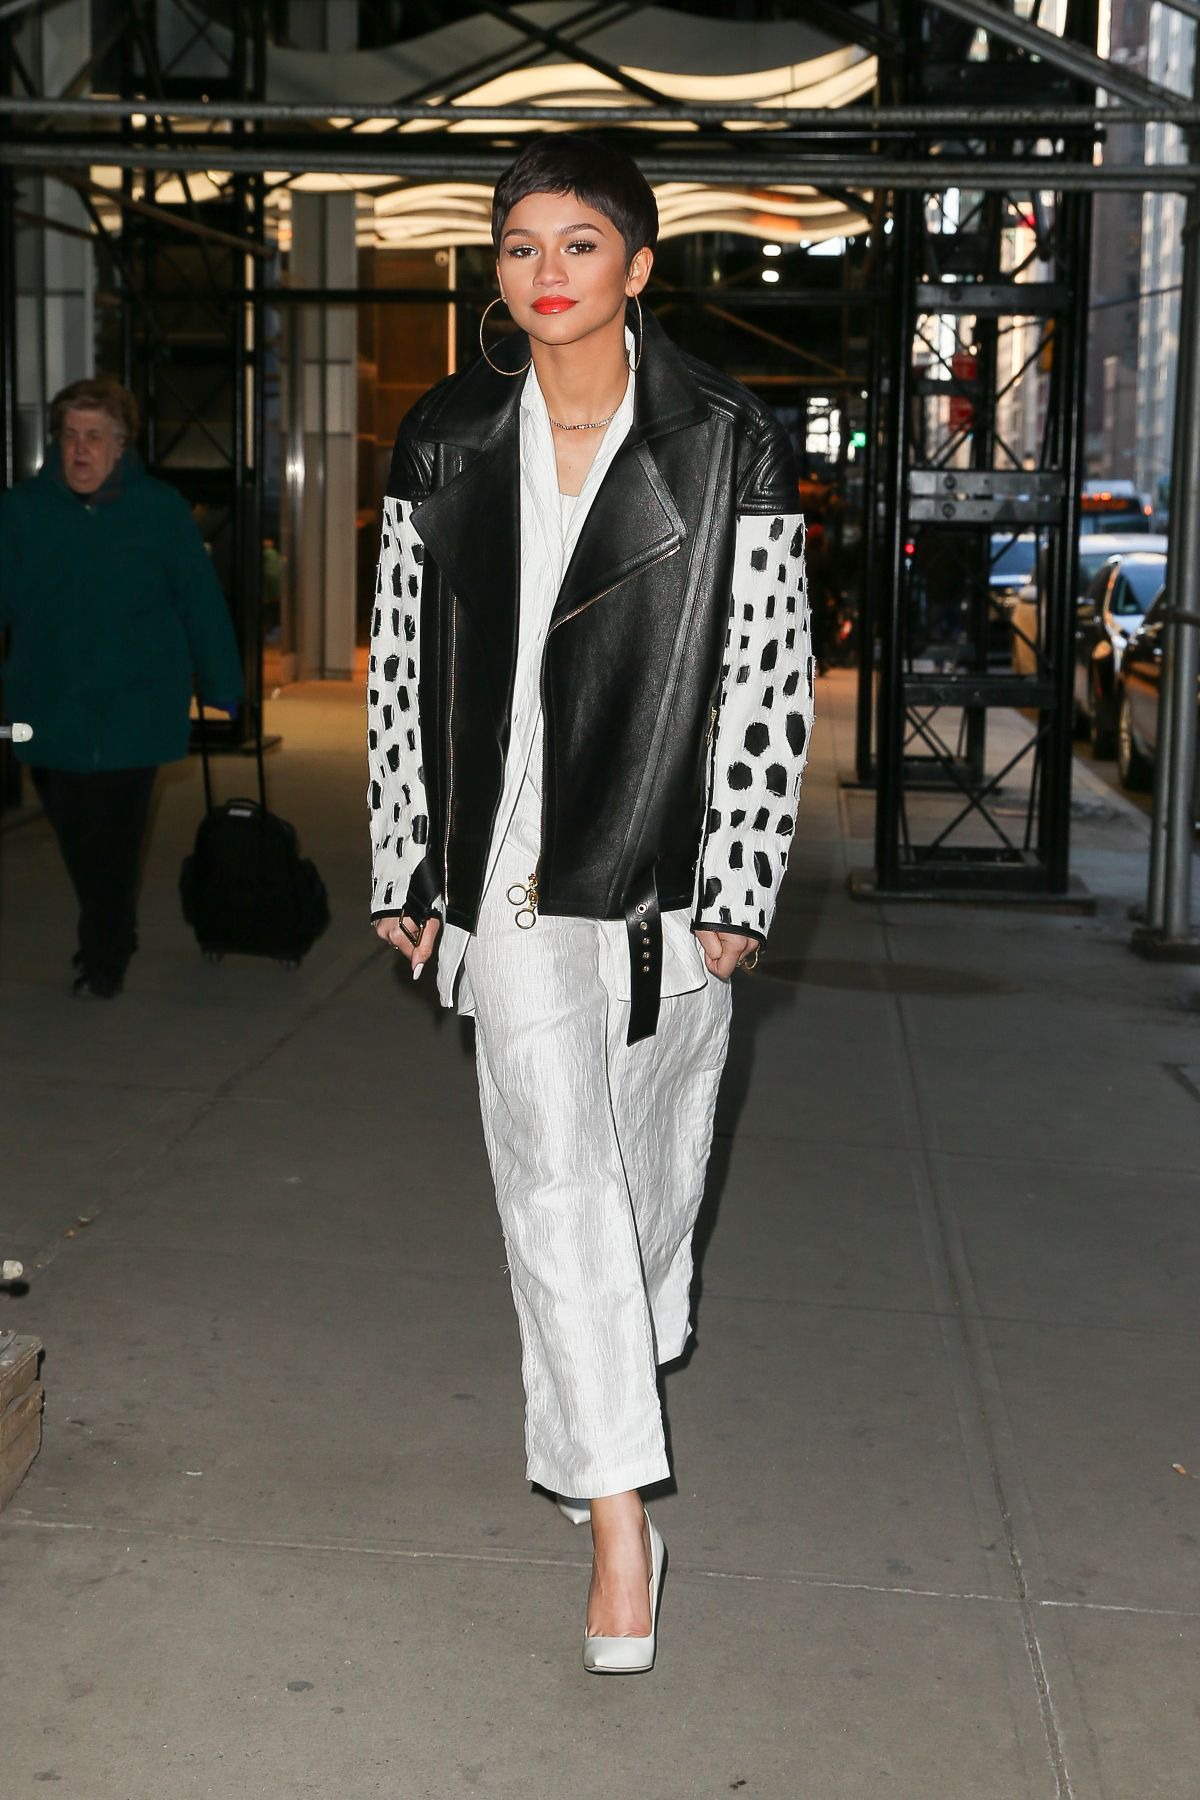 ZENDAYA COLEMAN Night Out in New York 1302